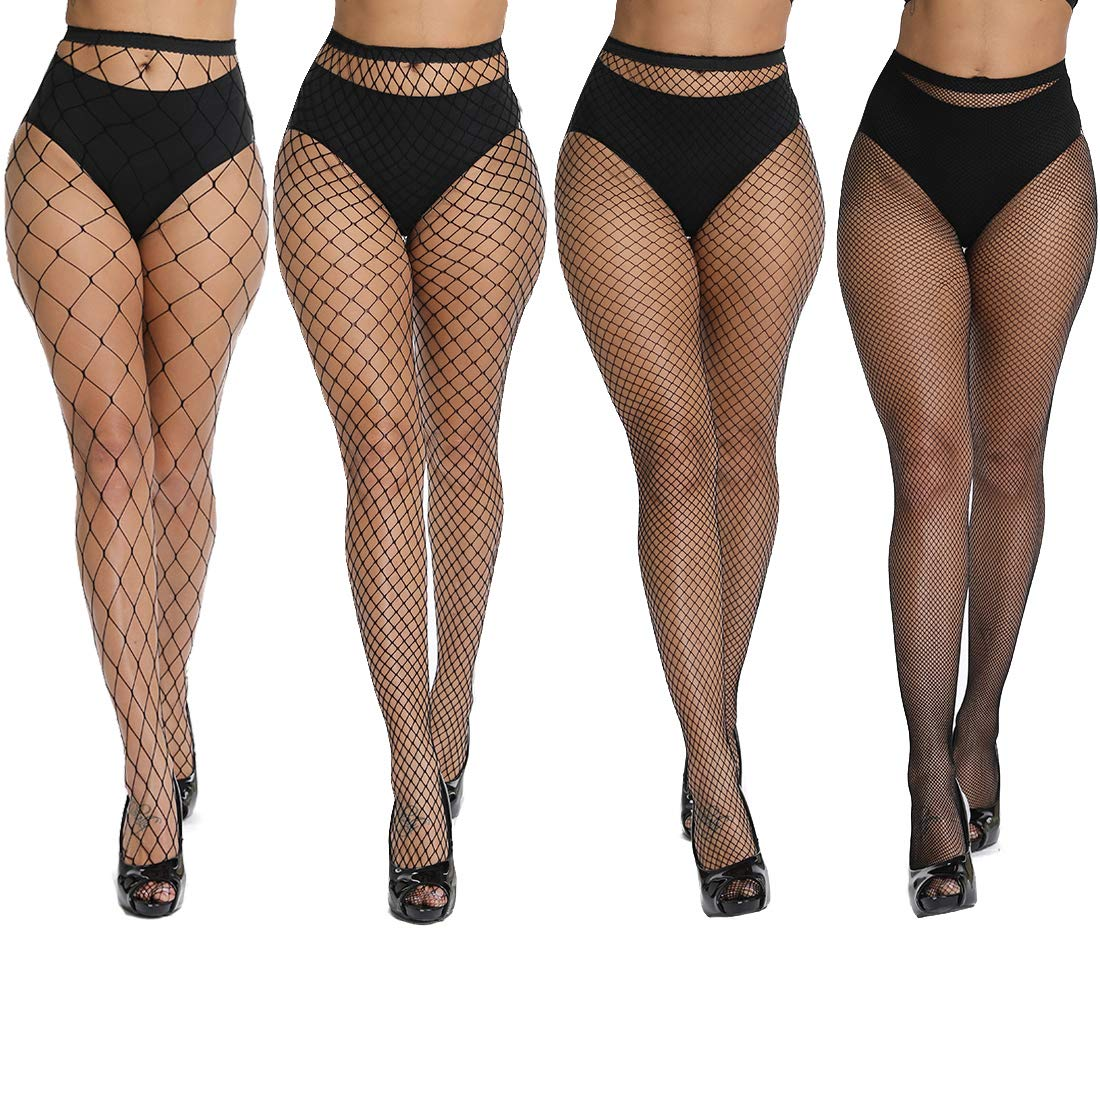 0cc5bc6a6b875 akiido High Waist Tights Fishnet Stockings Thigh High Stockings Pantyhose  (1-A-4Pairs1) at Amazon Women's Clothing store: